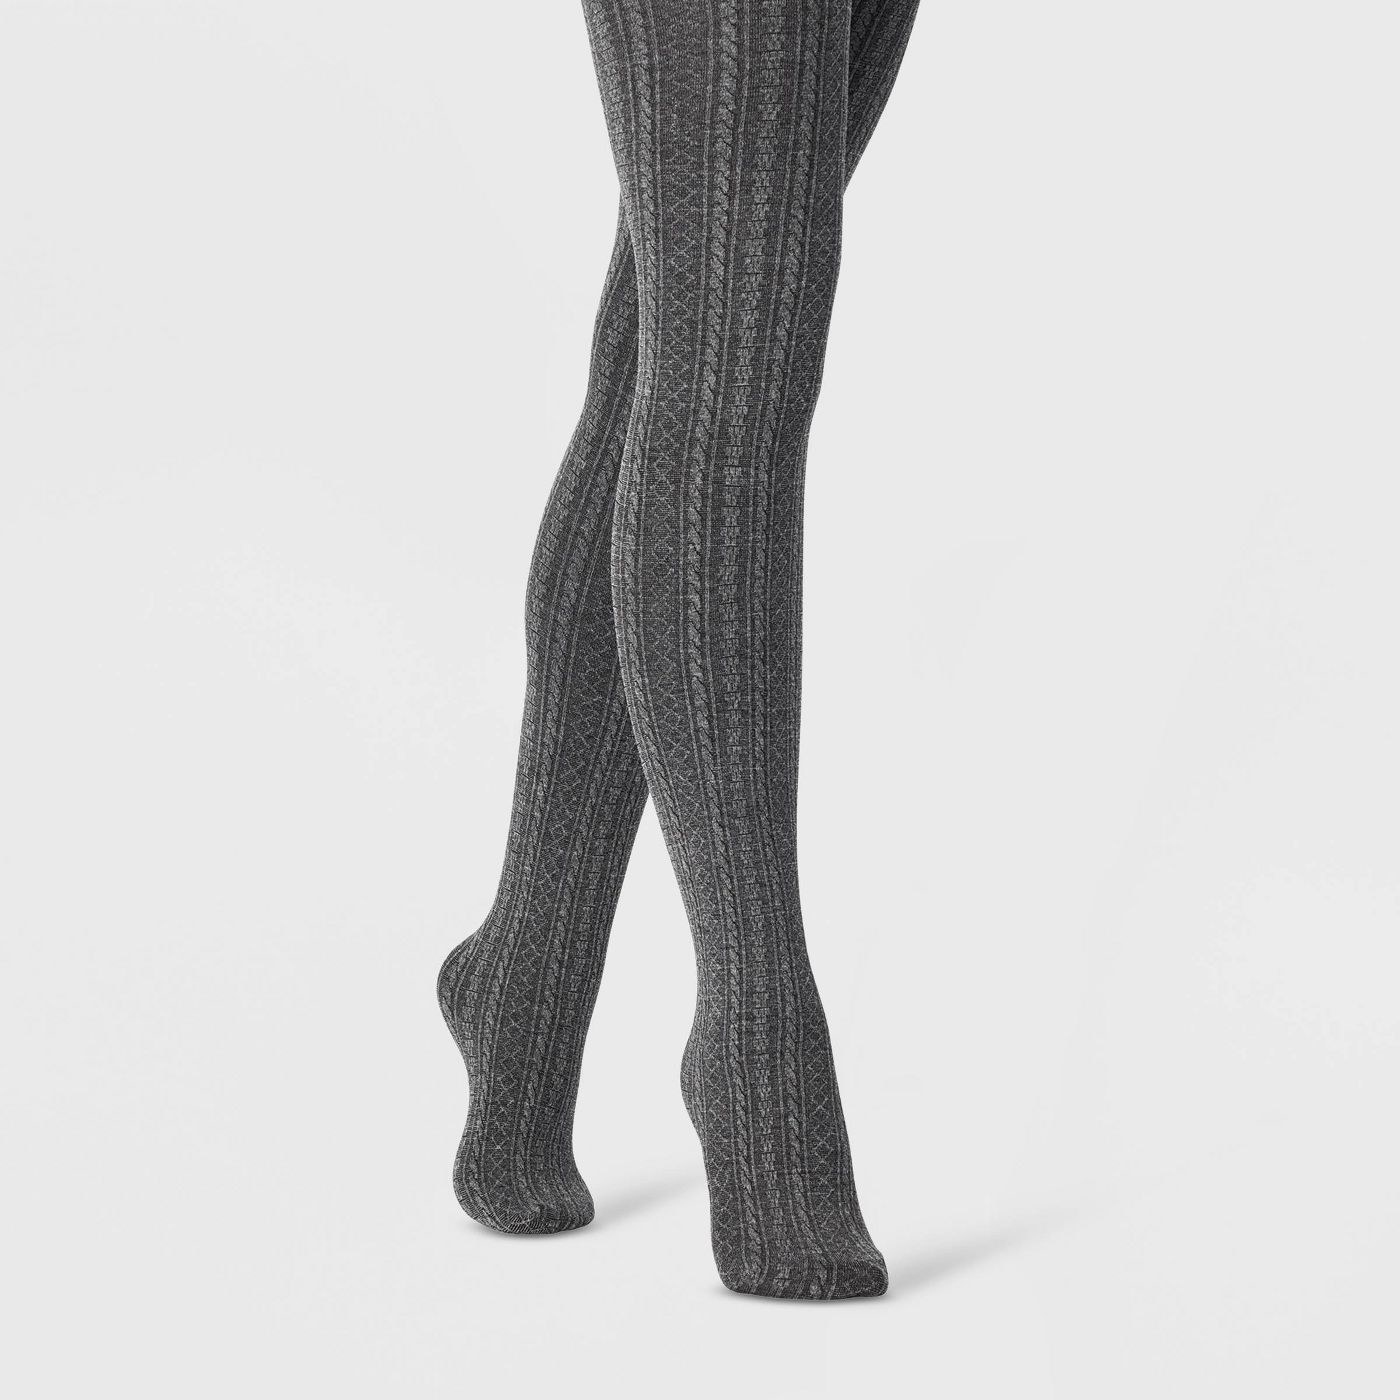 Model wearing the charcoal heather tights